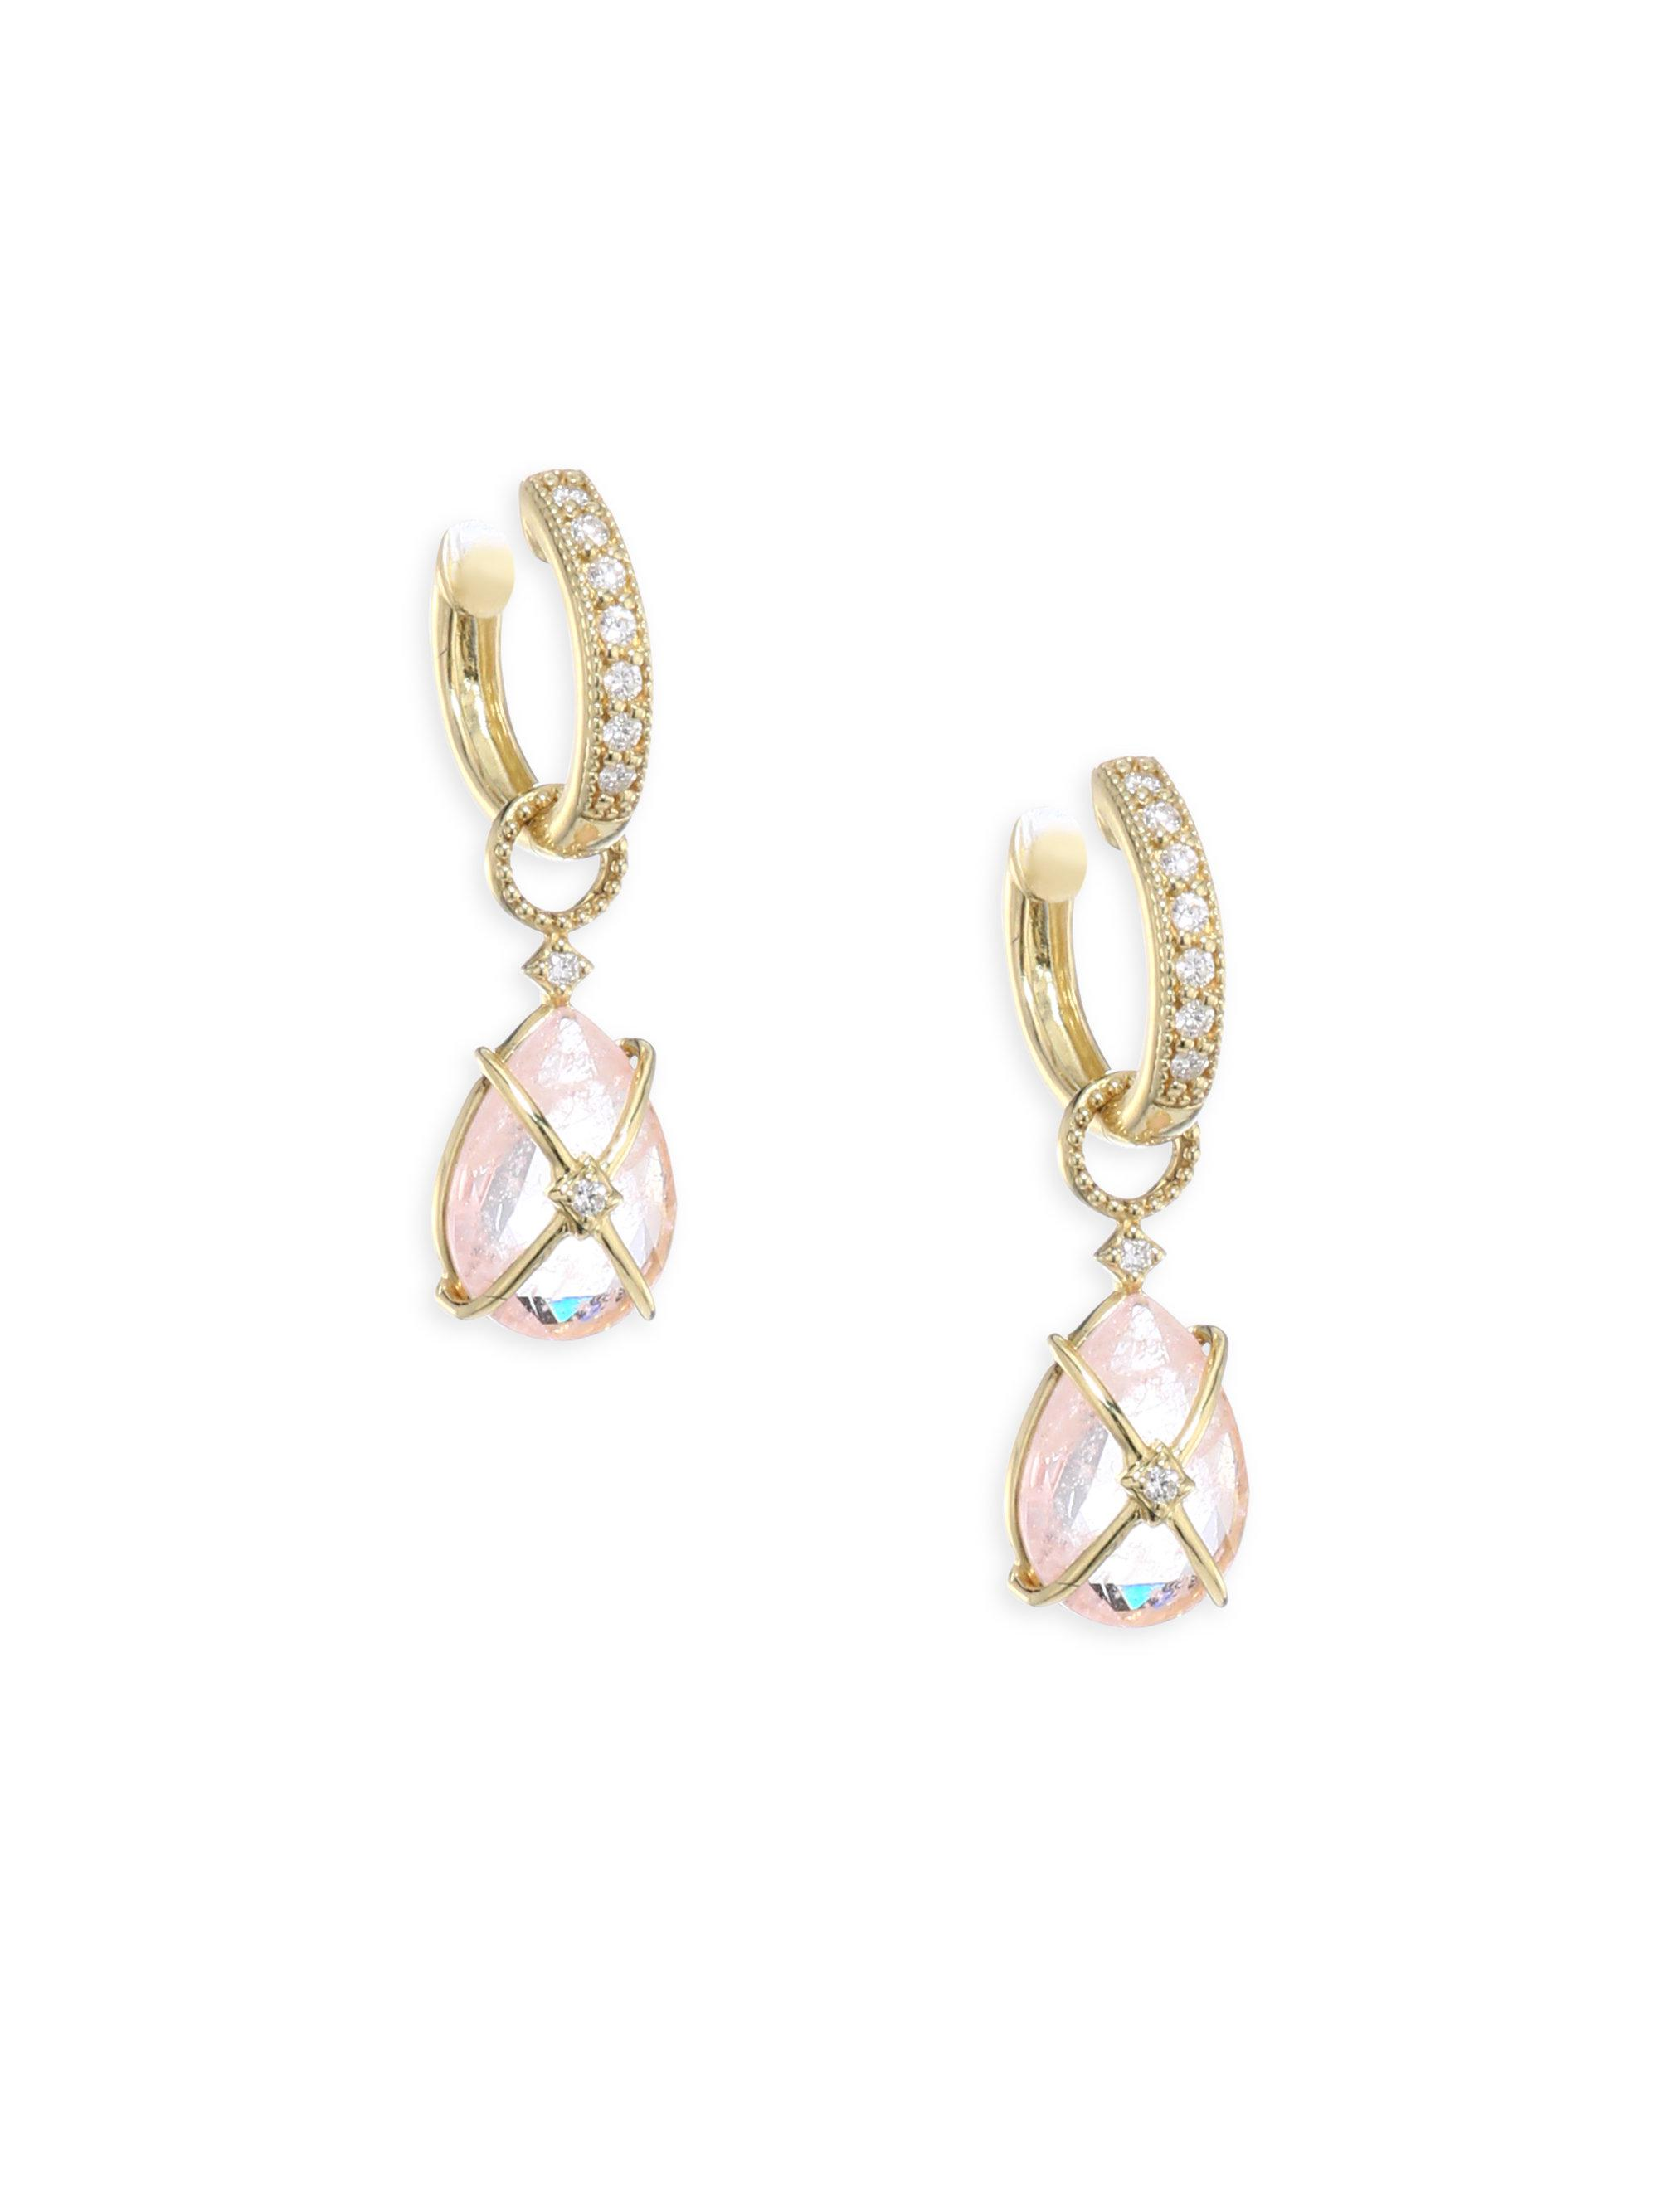 Jude Frances Wrapped Turquoise Earring Charms with Diamonds LoseH